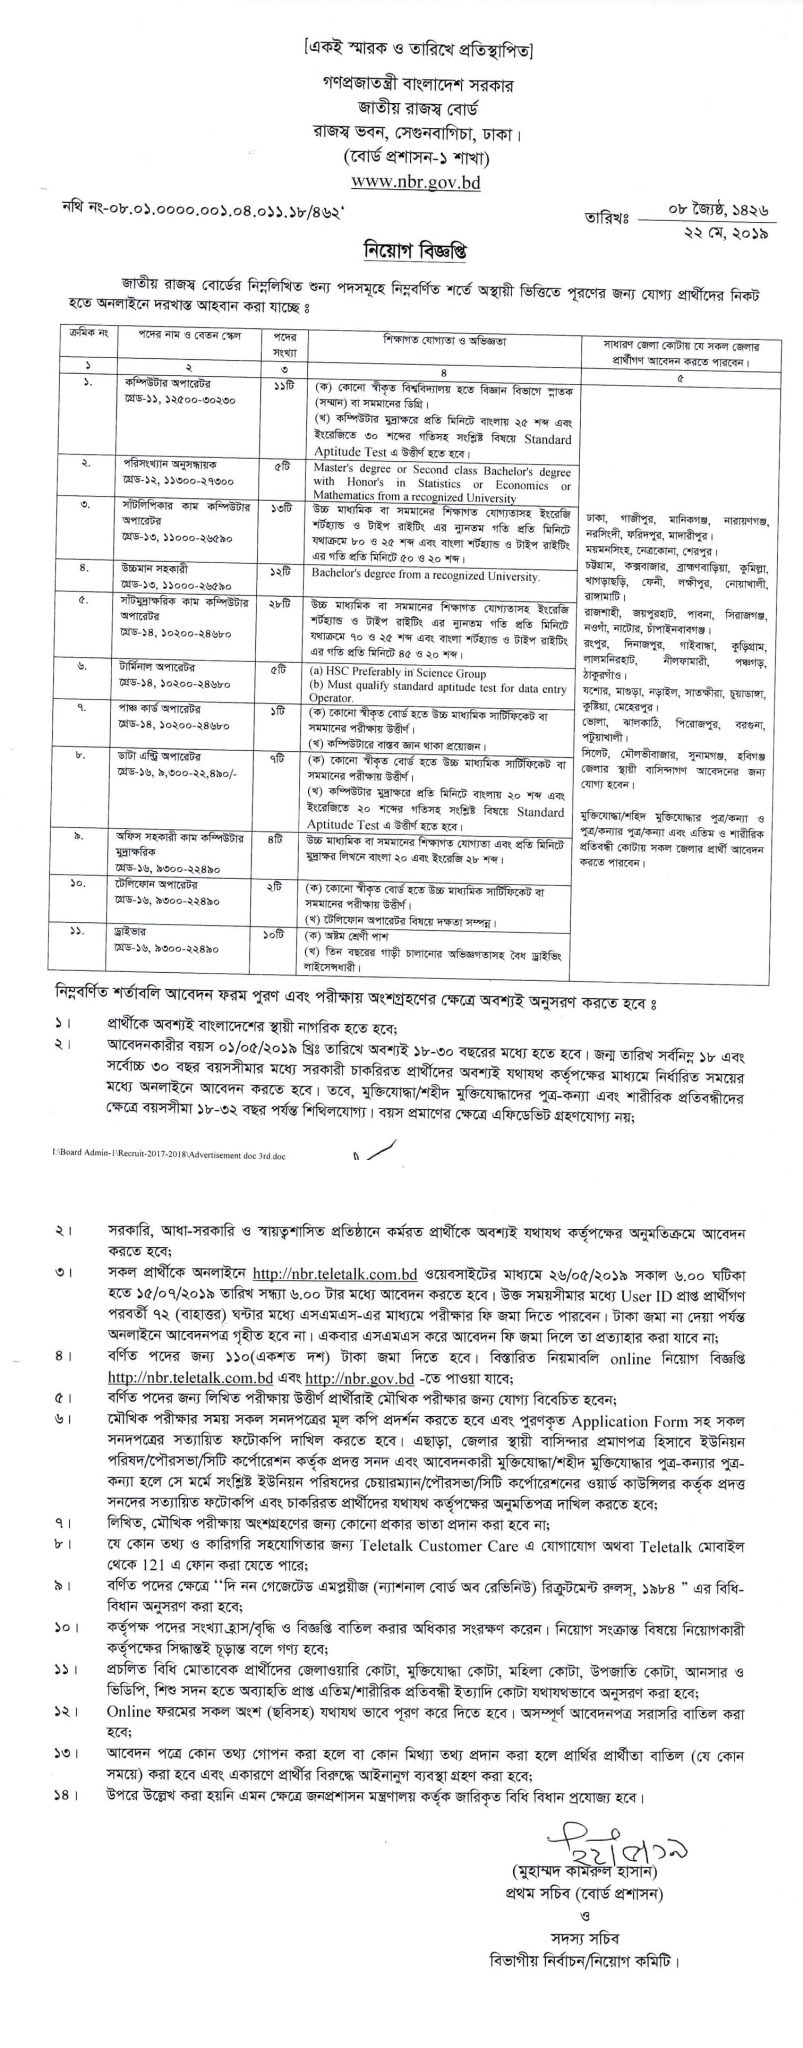 National Board of Revenue Job Circular 2019